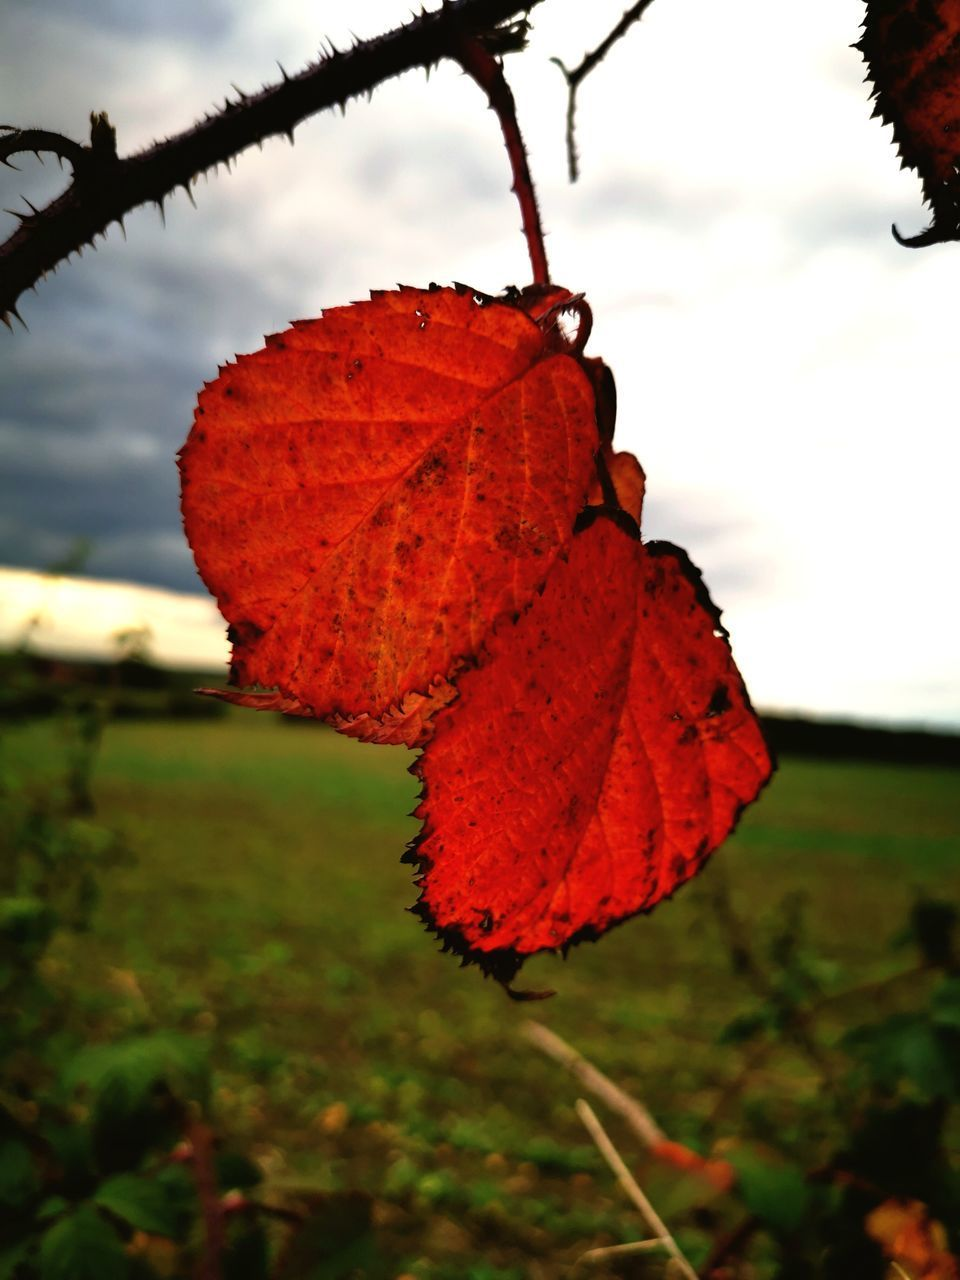 CLOSE-UP OF RED LEAF ON TREE AGAINST SKY